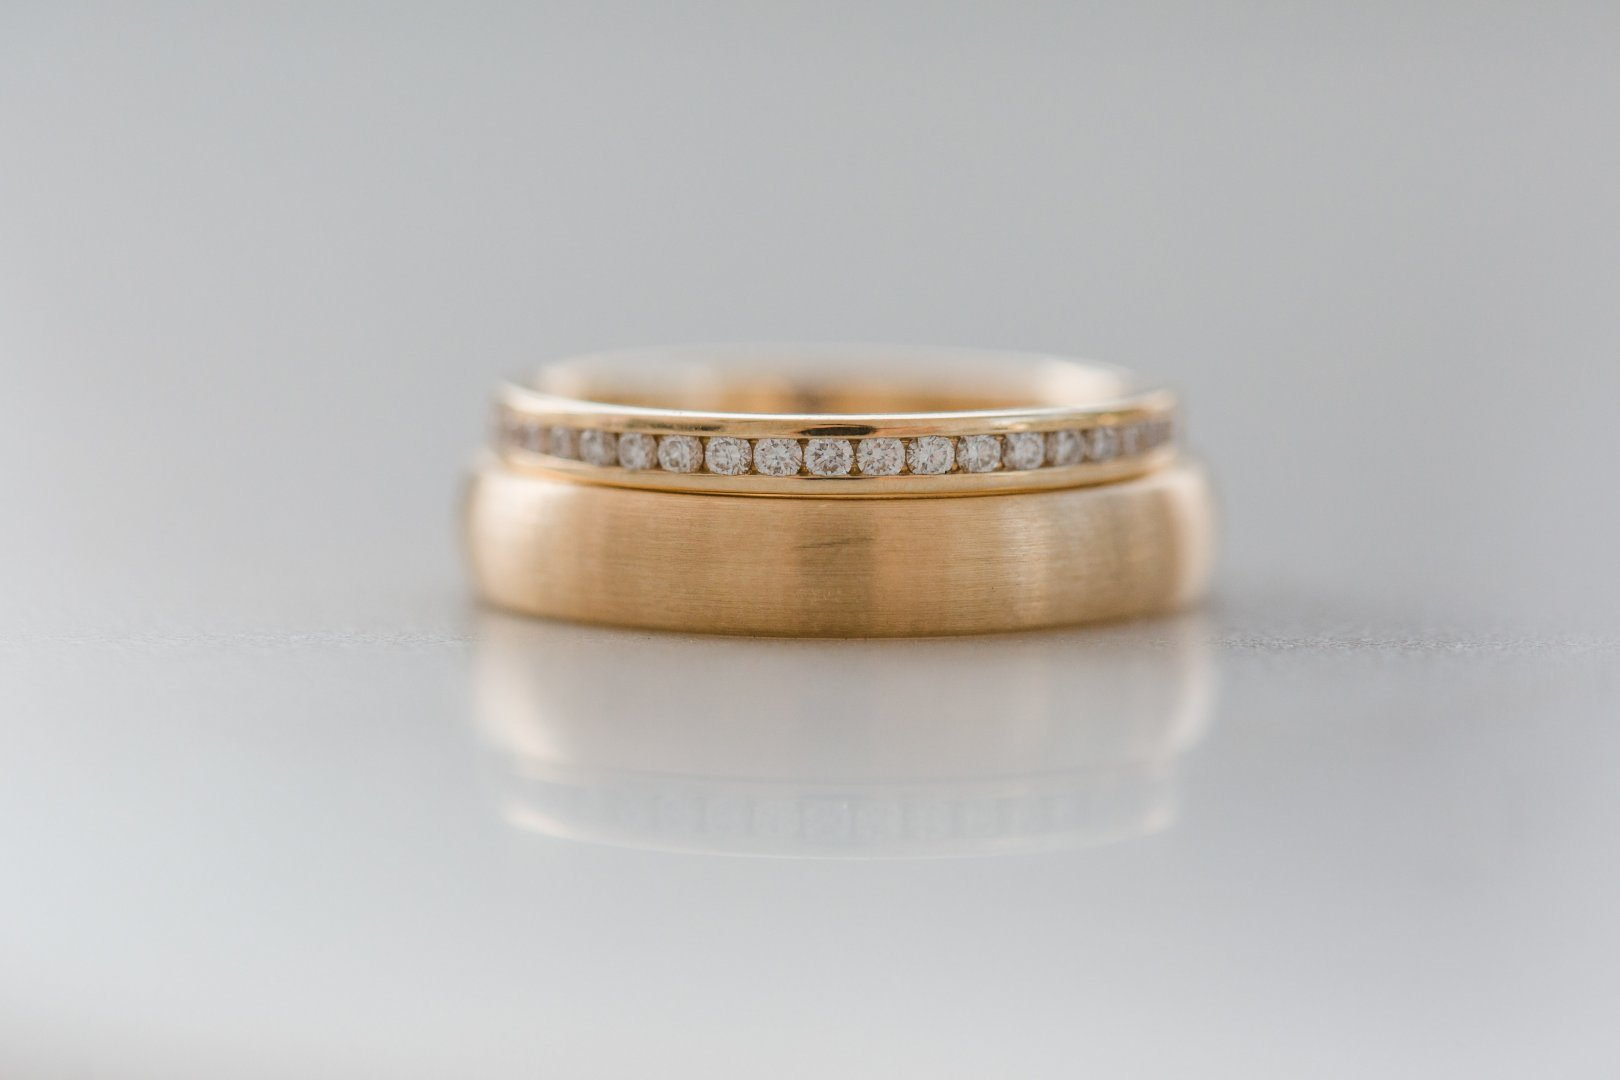 Ring Wedding ring Fashion accessory Jewellery Wedding ceremony supply Beige Metal Engagement ring Gold